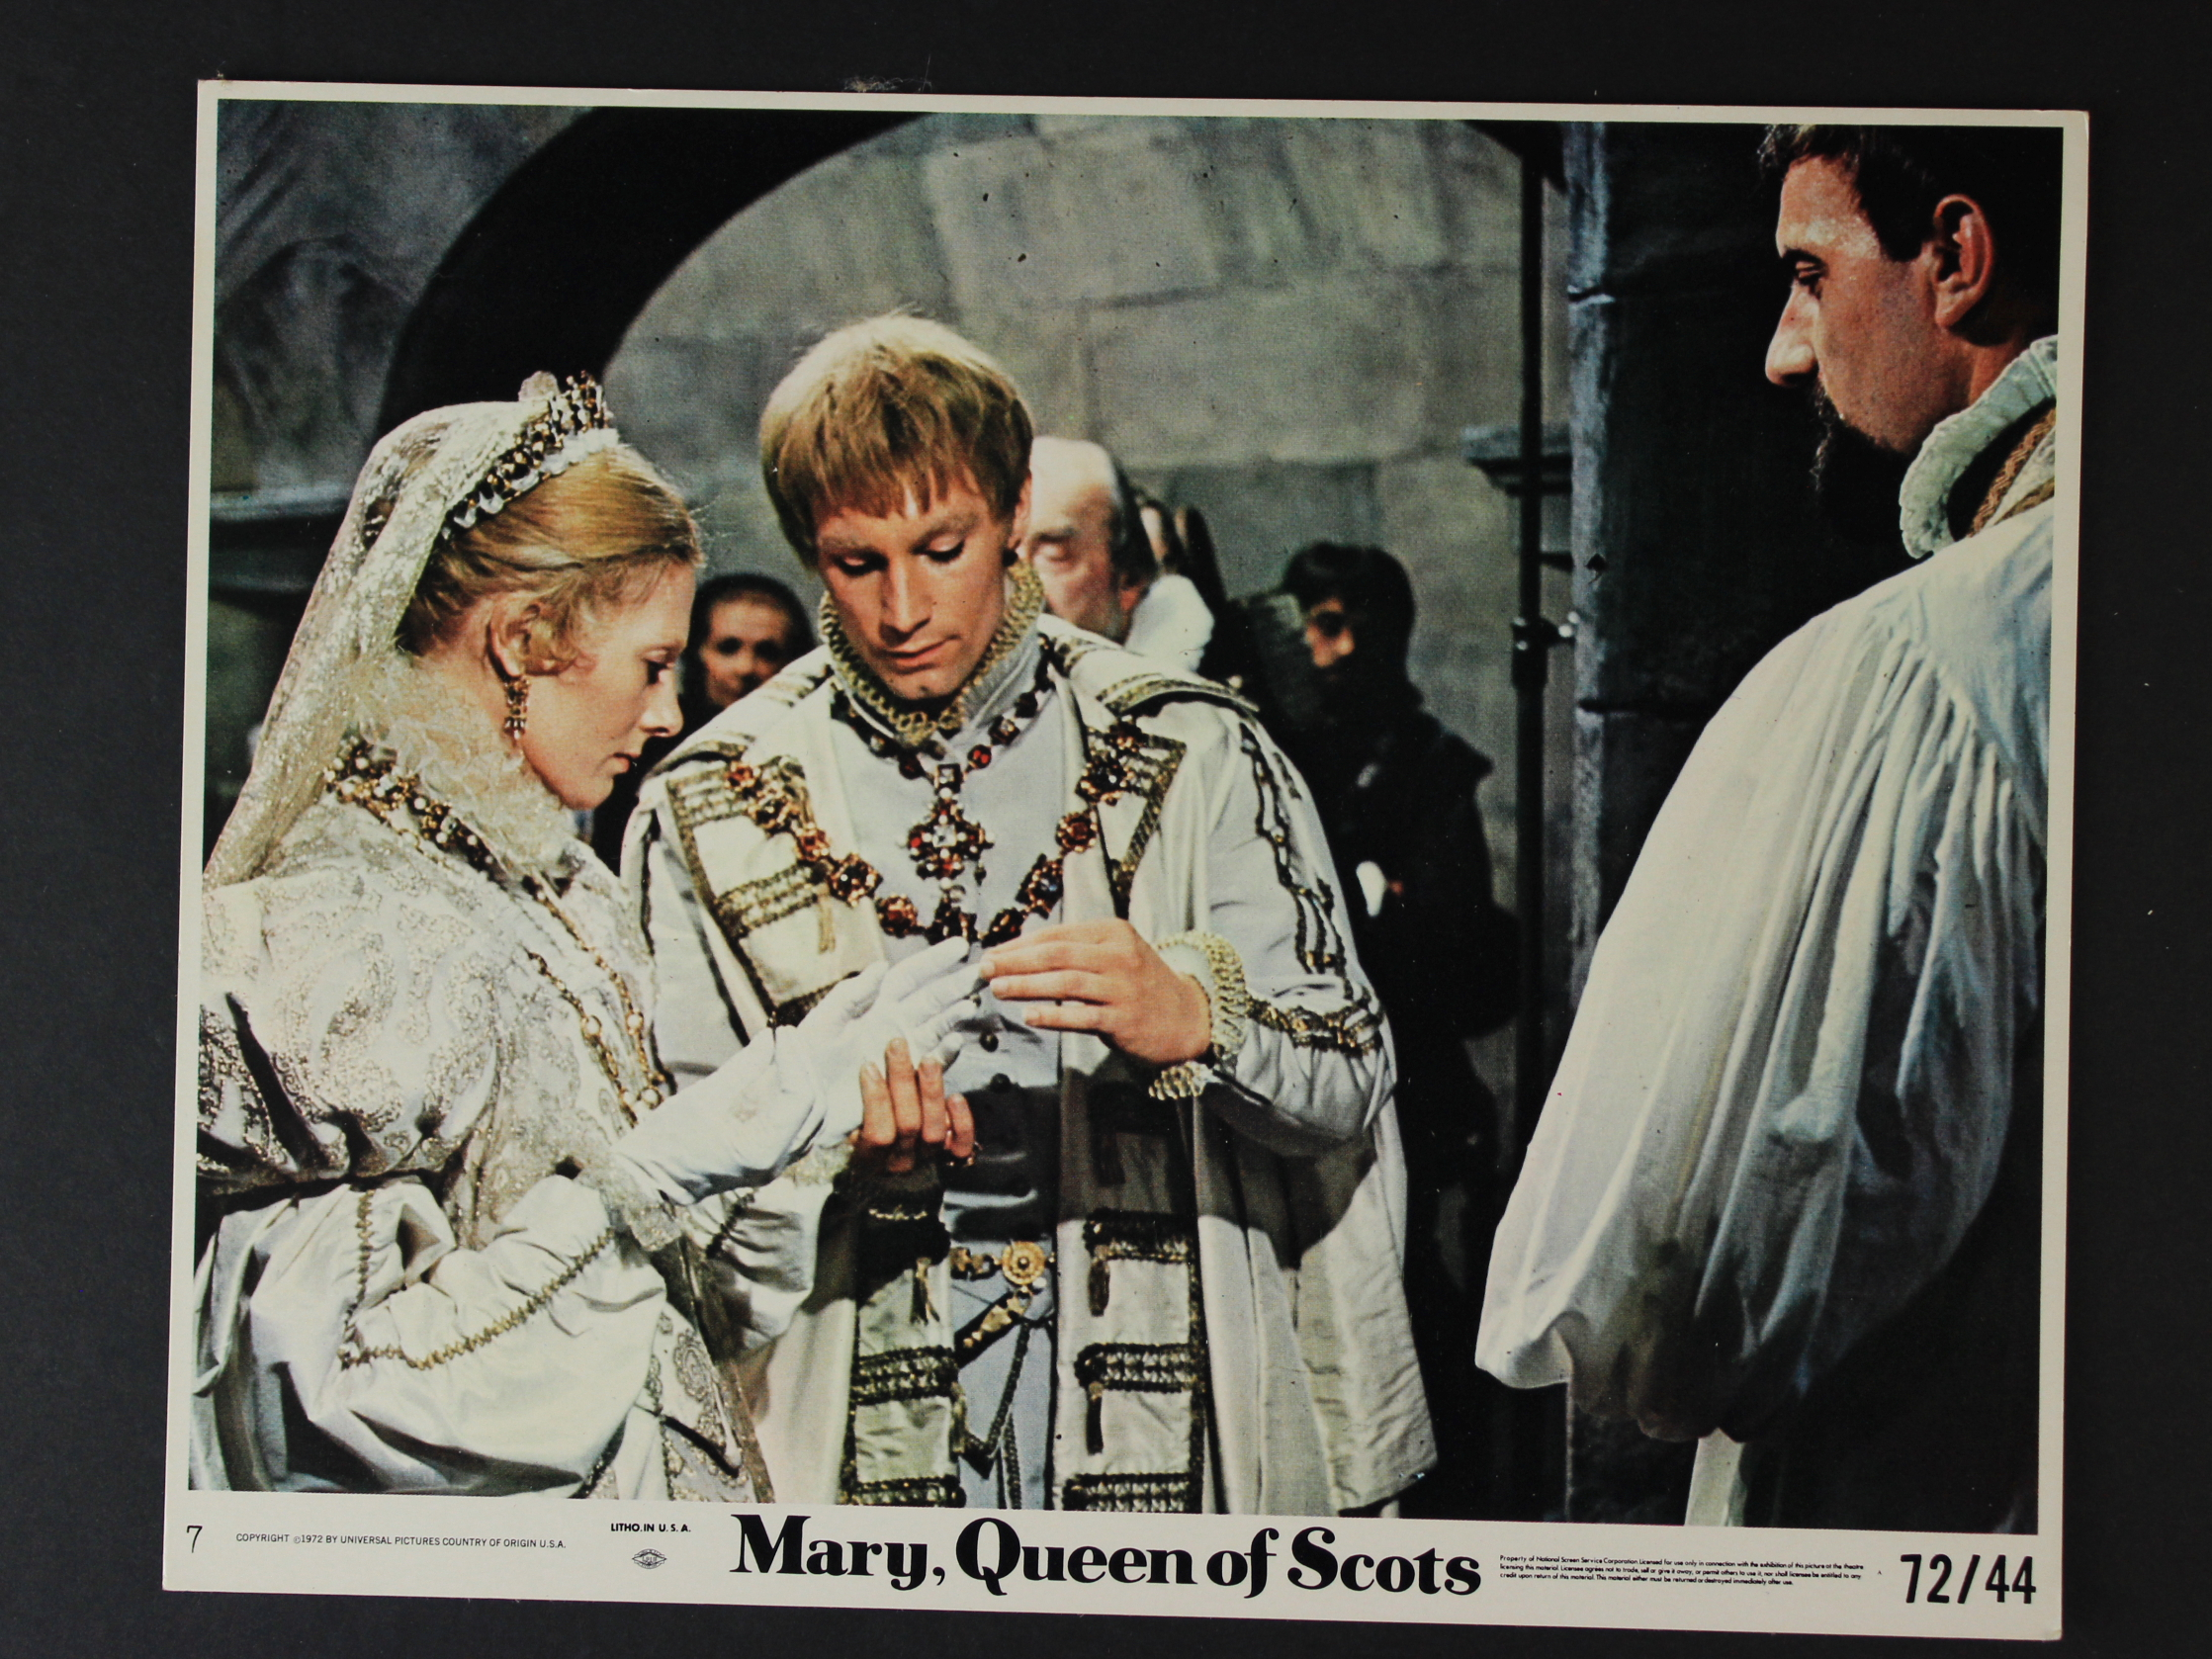 Vanessa Redgrave, Timothy Dalton, and Patrick McGoohan in Mary, Queen of Scots (1971)